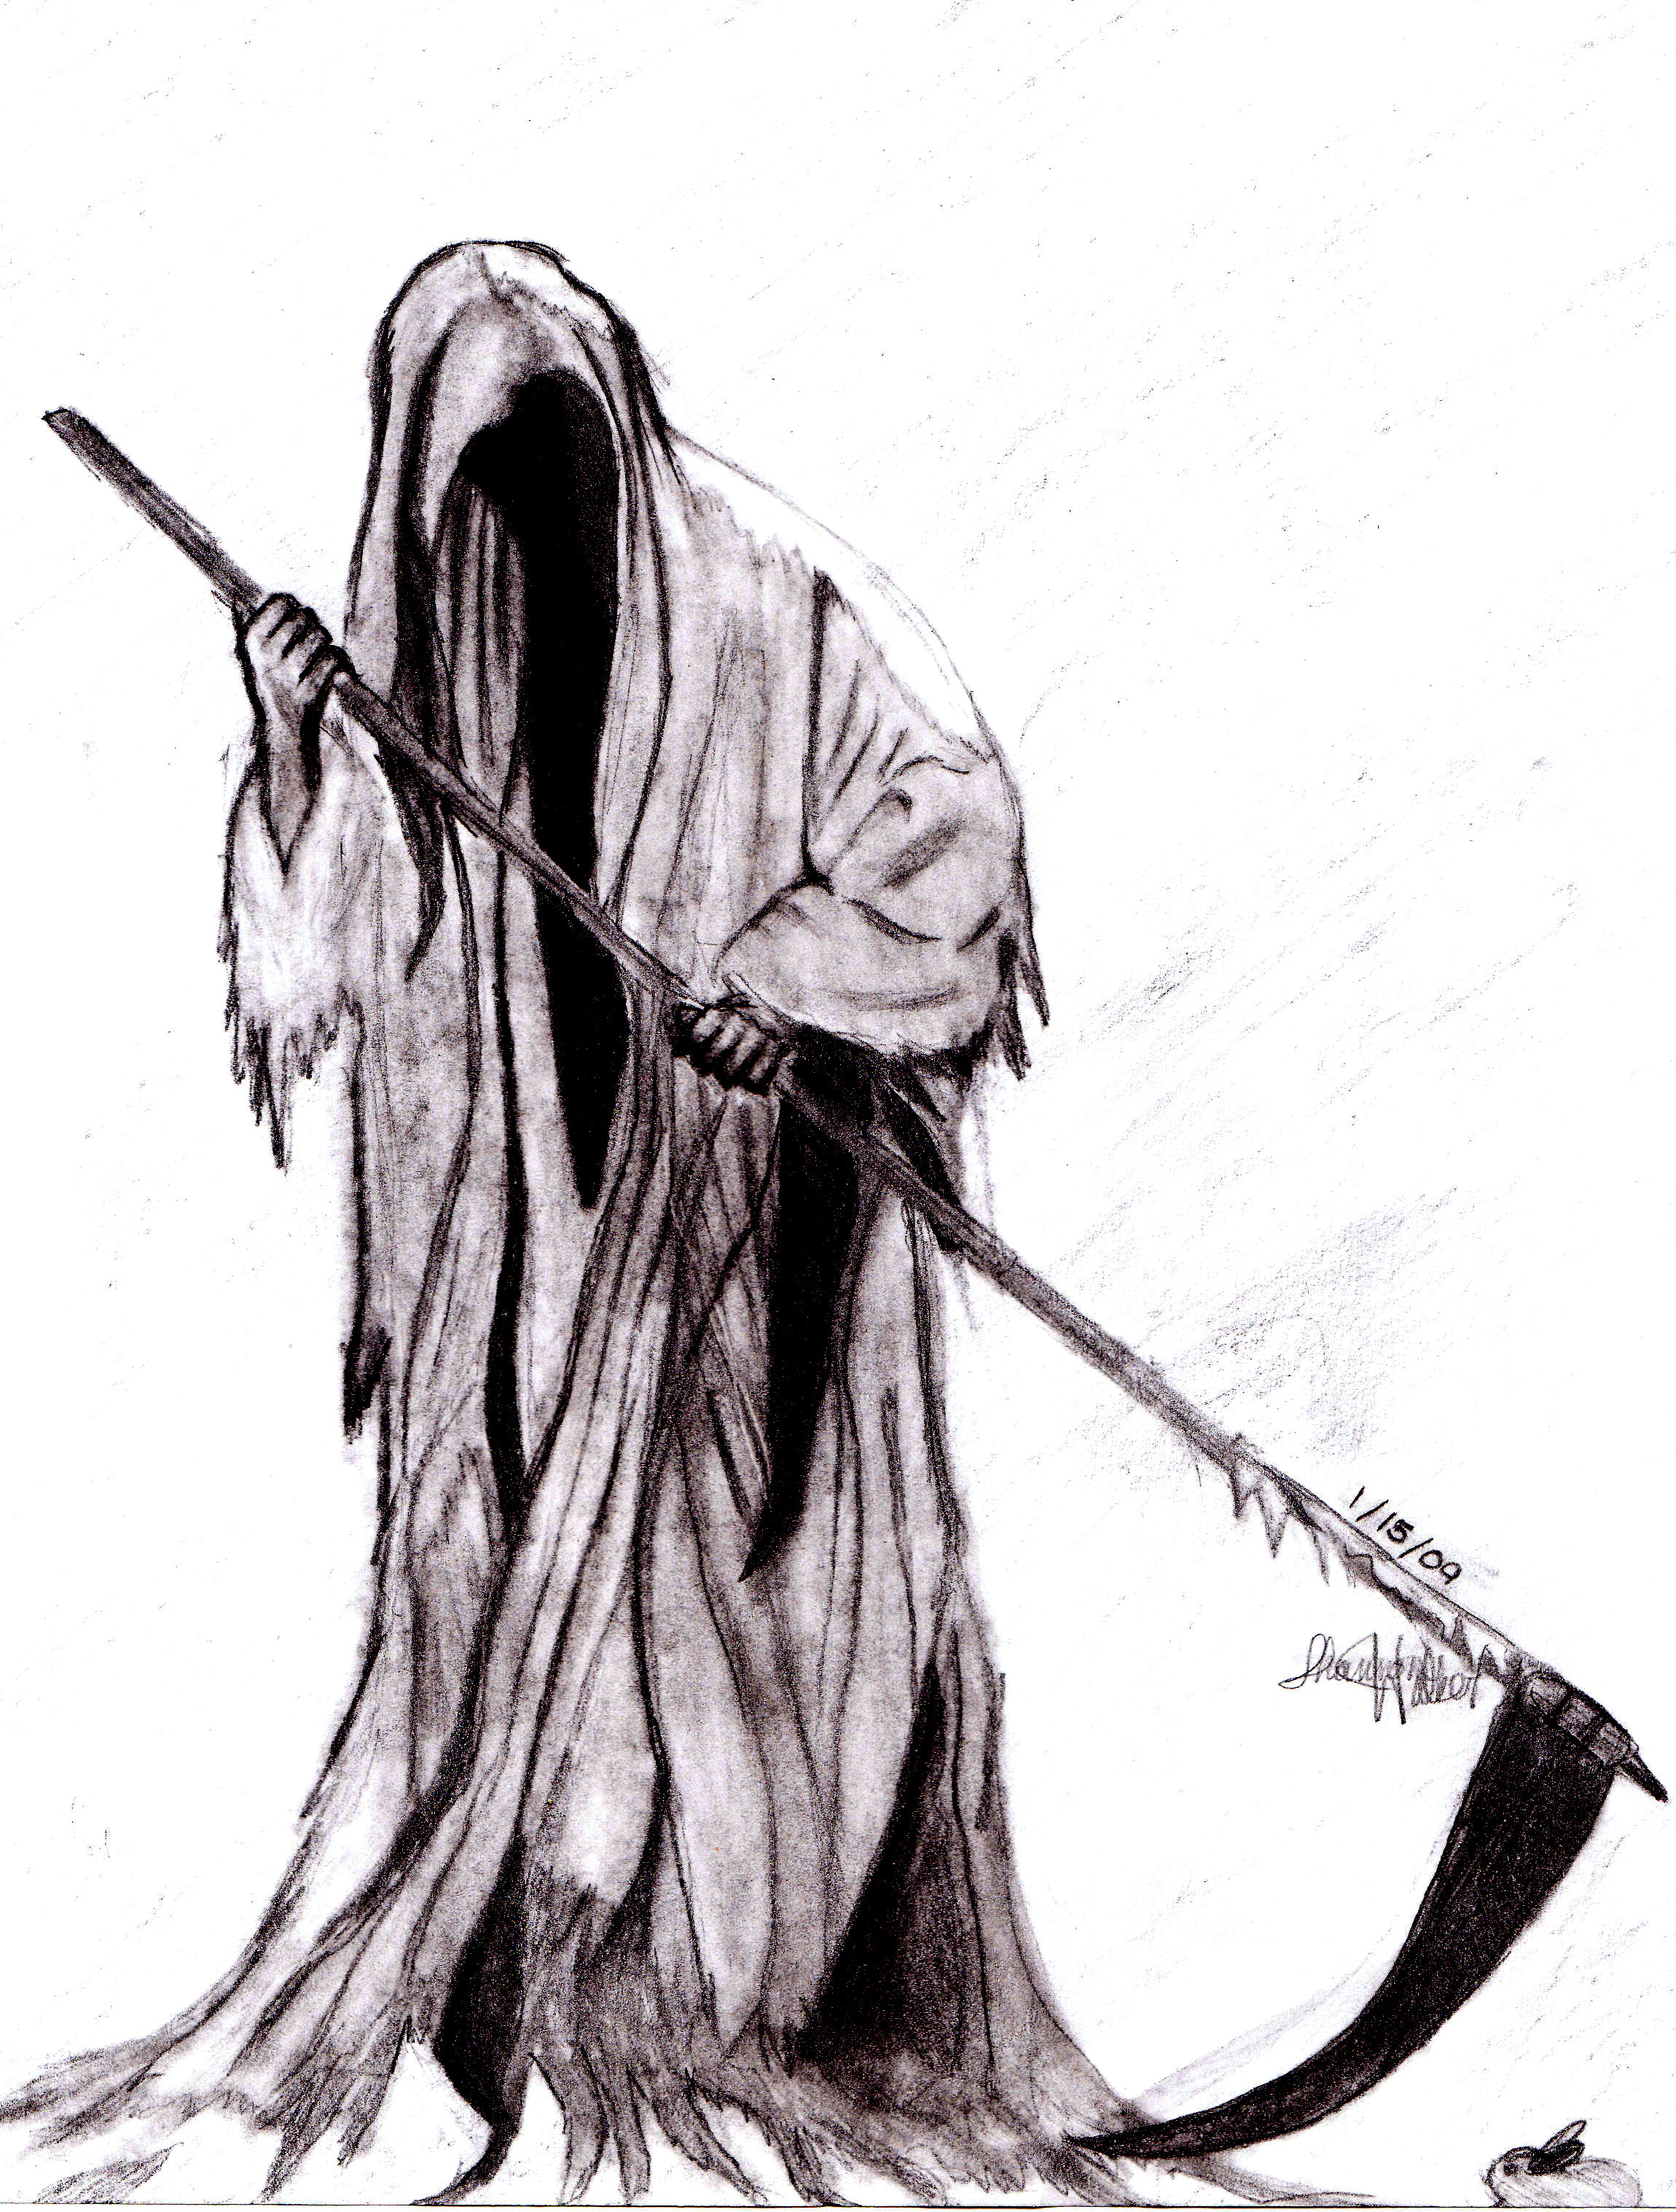 Drawn grim reaper hand sketch Death and Tatted Grim Sleeve